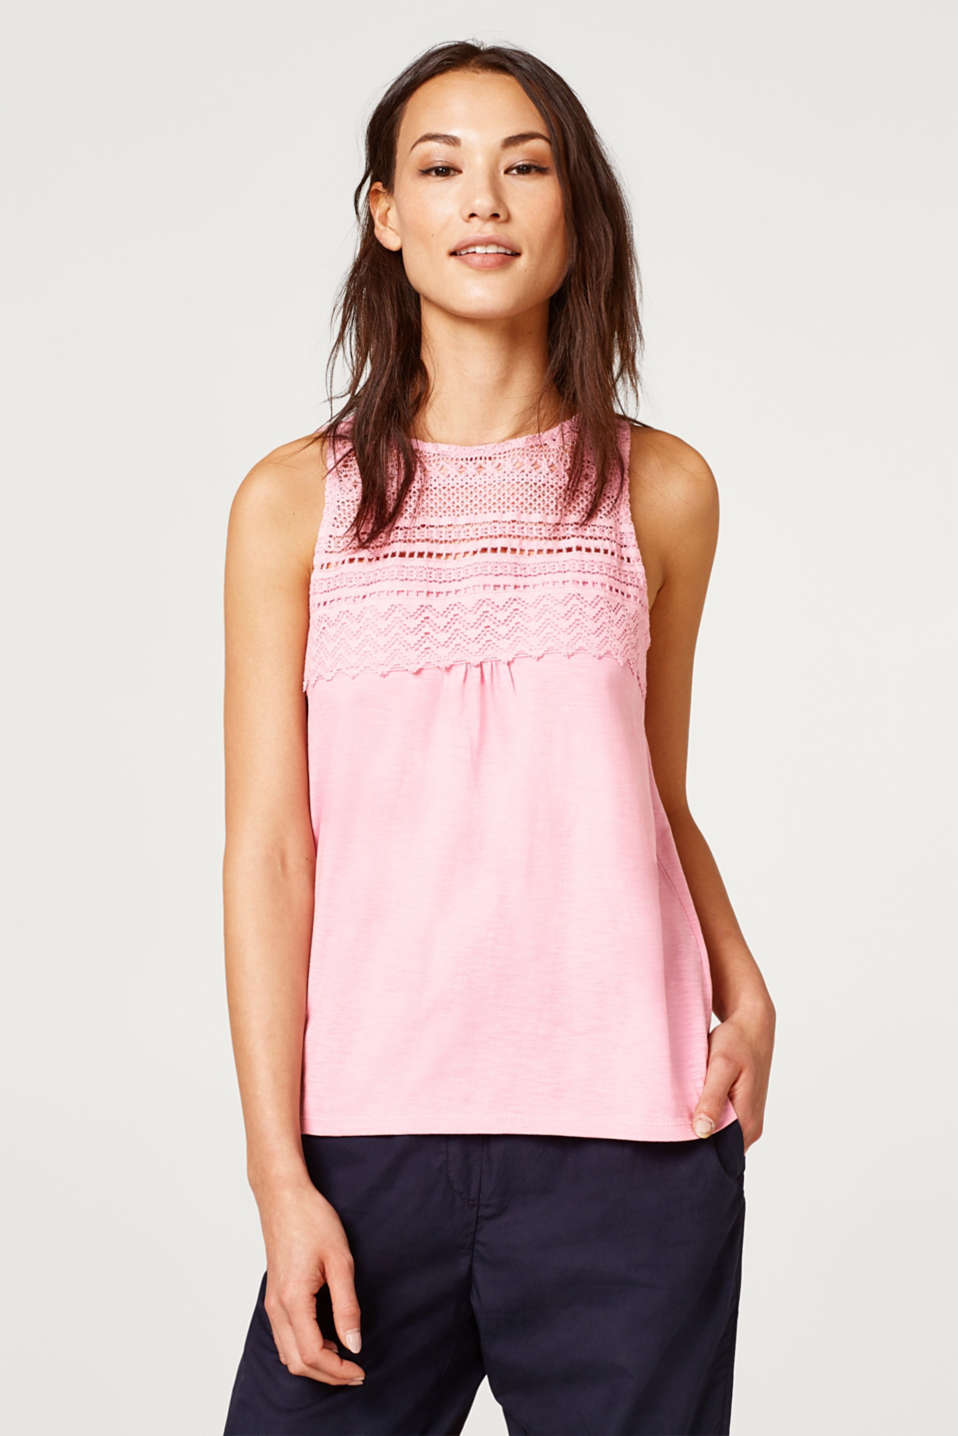 Esprit - Crocheted lace detail slub top, 100% cotton